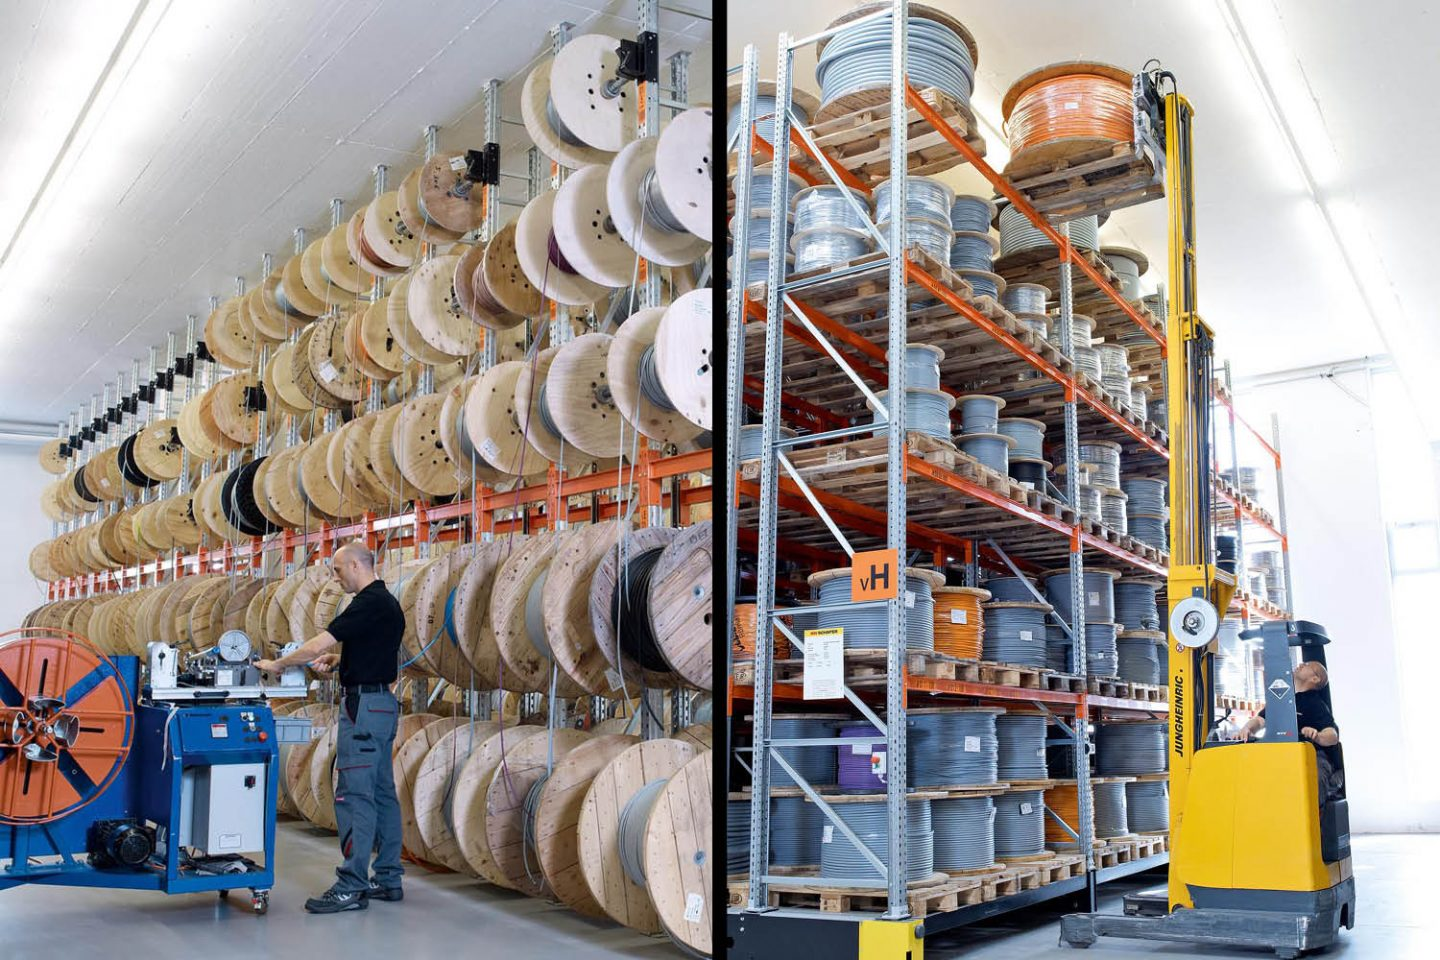 On the picture you can see Volland's warehouse with cable drums.